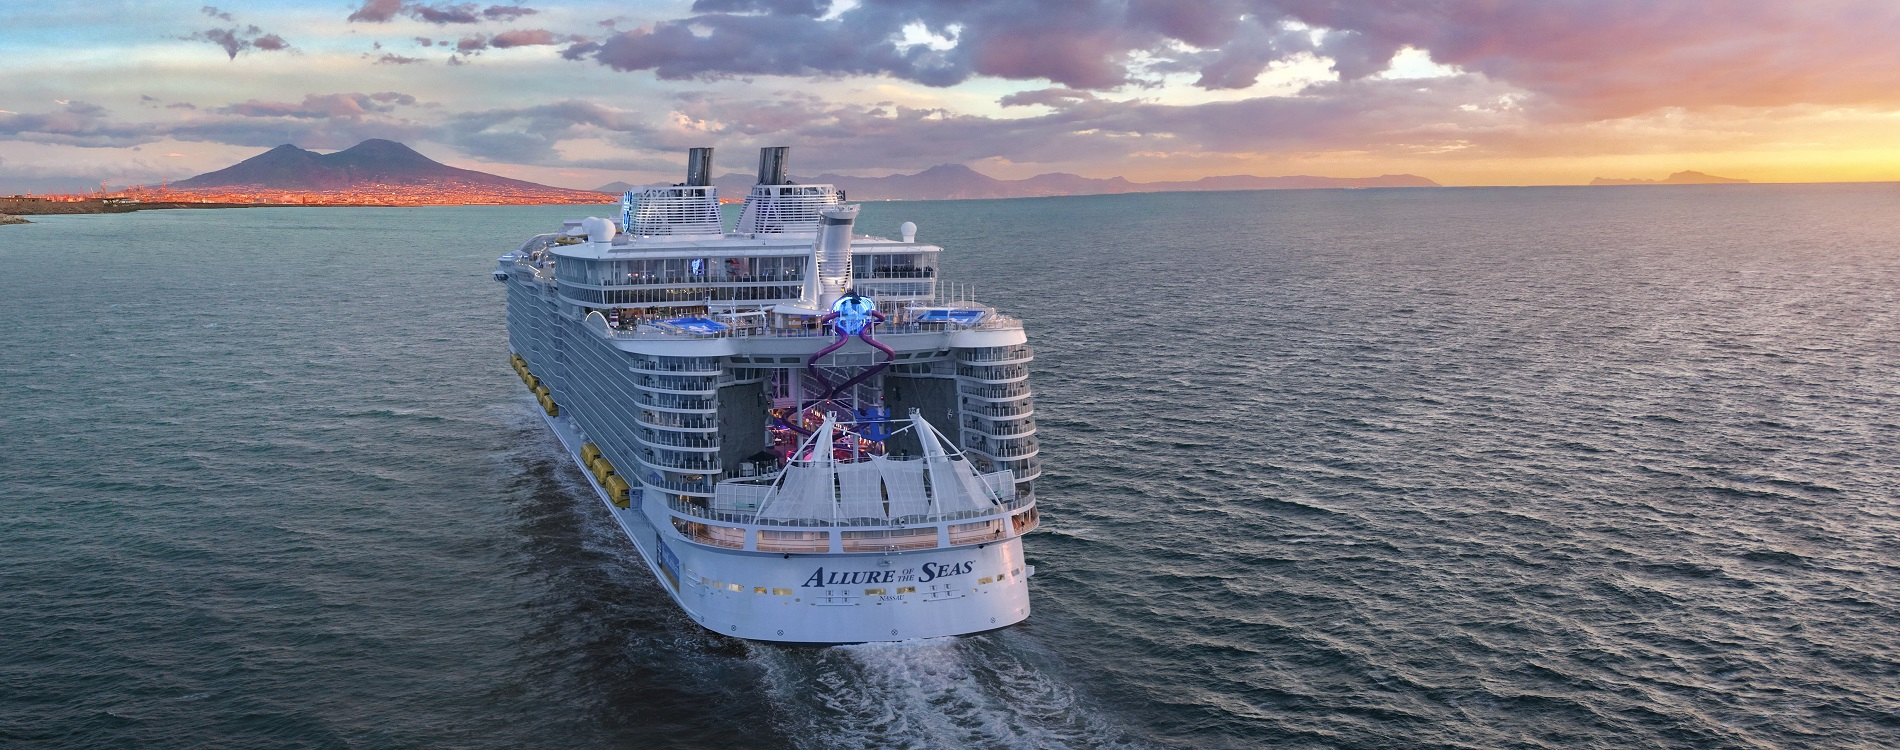 allure-of-the-seas-banner